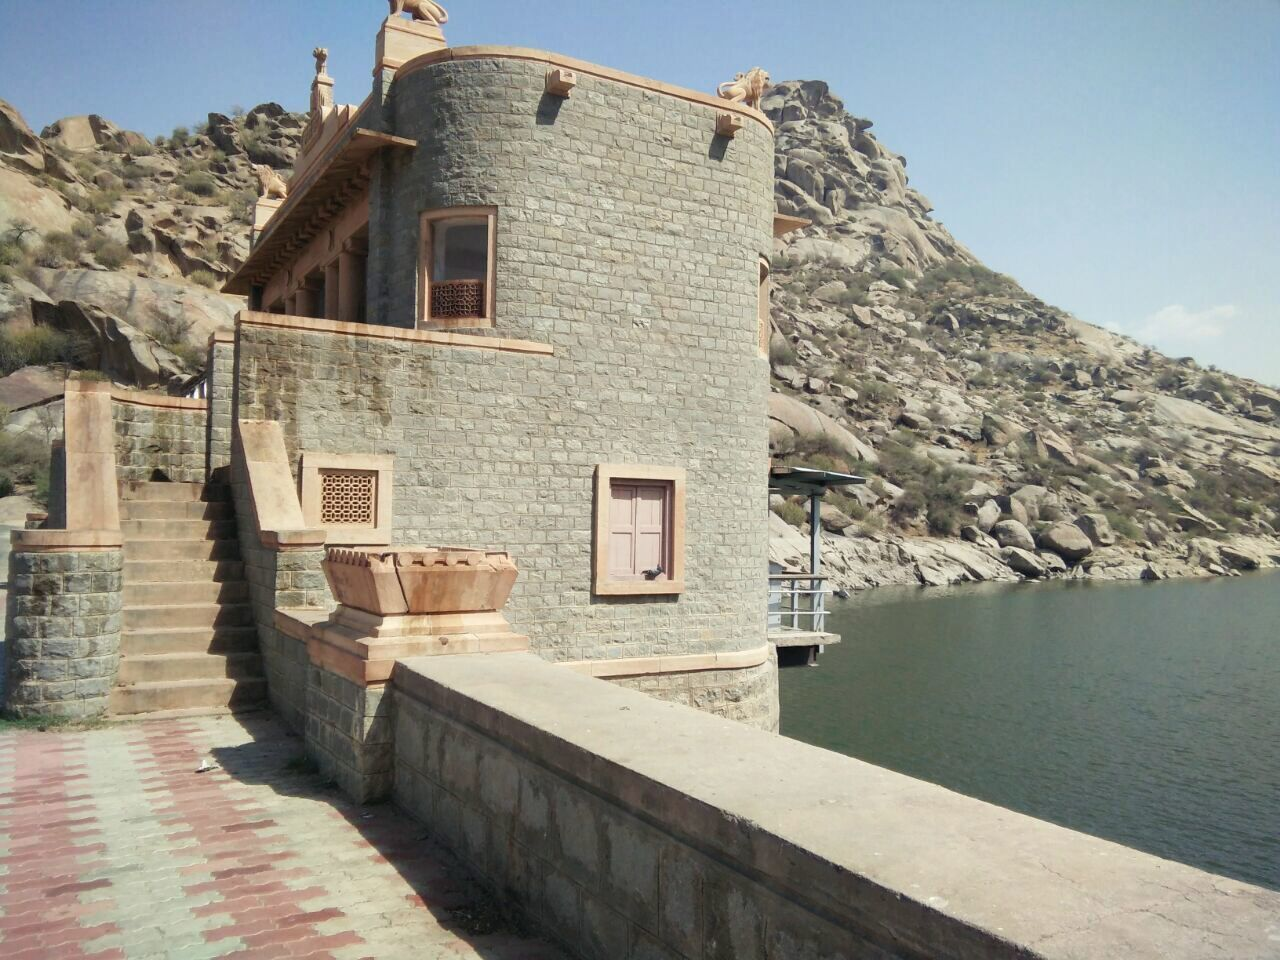 A Tiny House Built On A Dam At Jawai Architecture Water Clear Sky Mountain No People Day Outdoors Sky The Secret Spaces